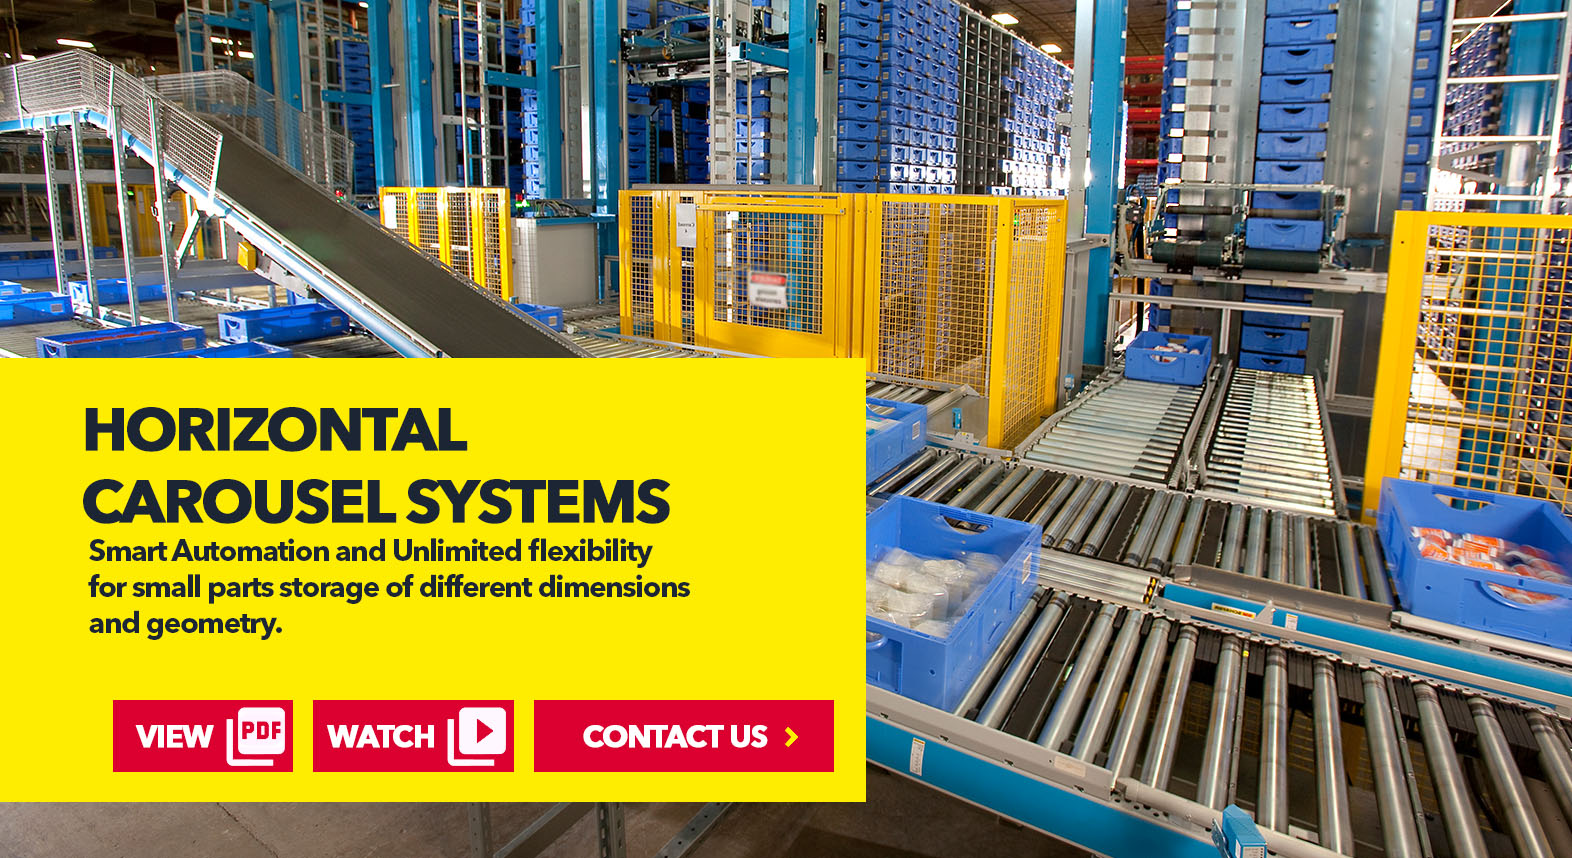 Horizontal Casousel Systems By SSI Schaefer USA Download Guide, Watch  Video, Contact Us.